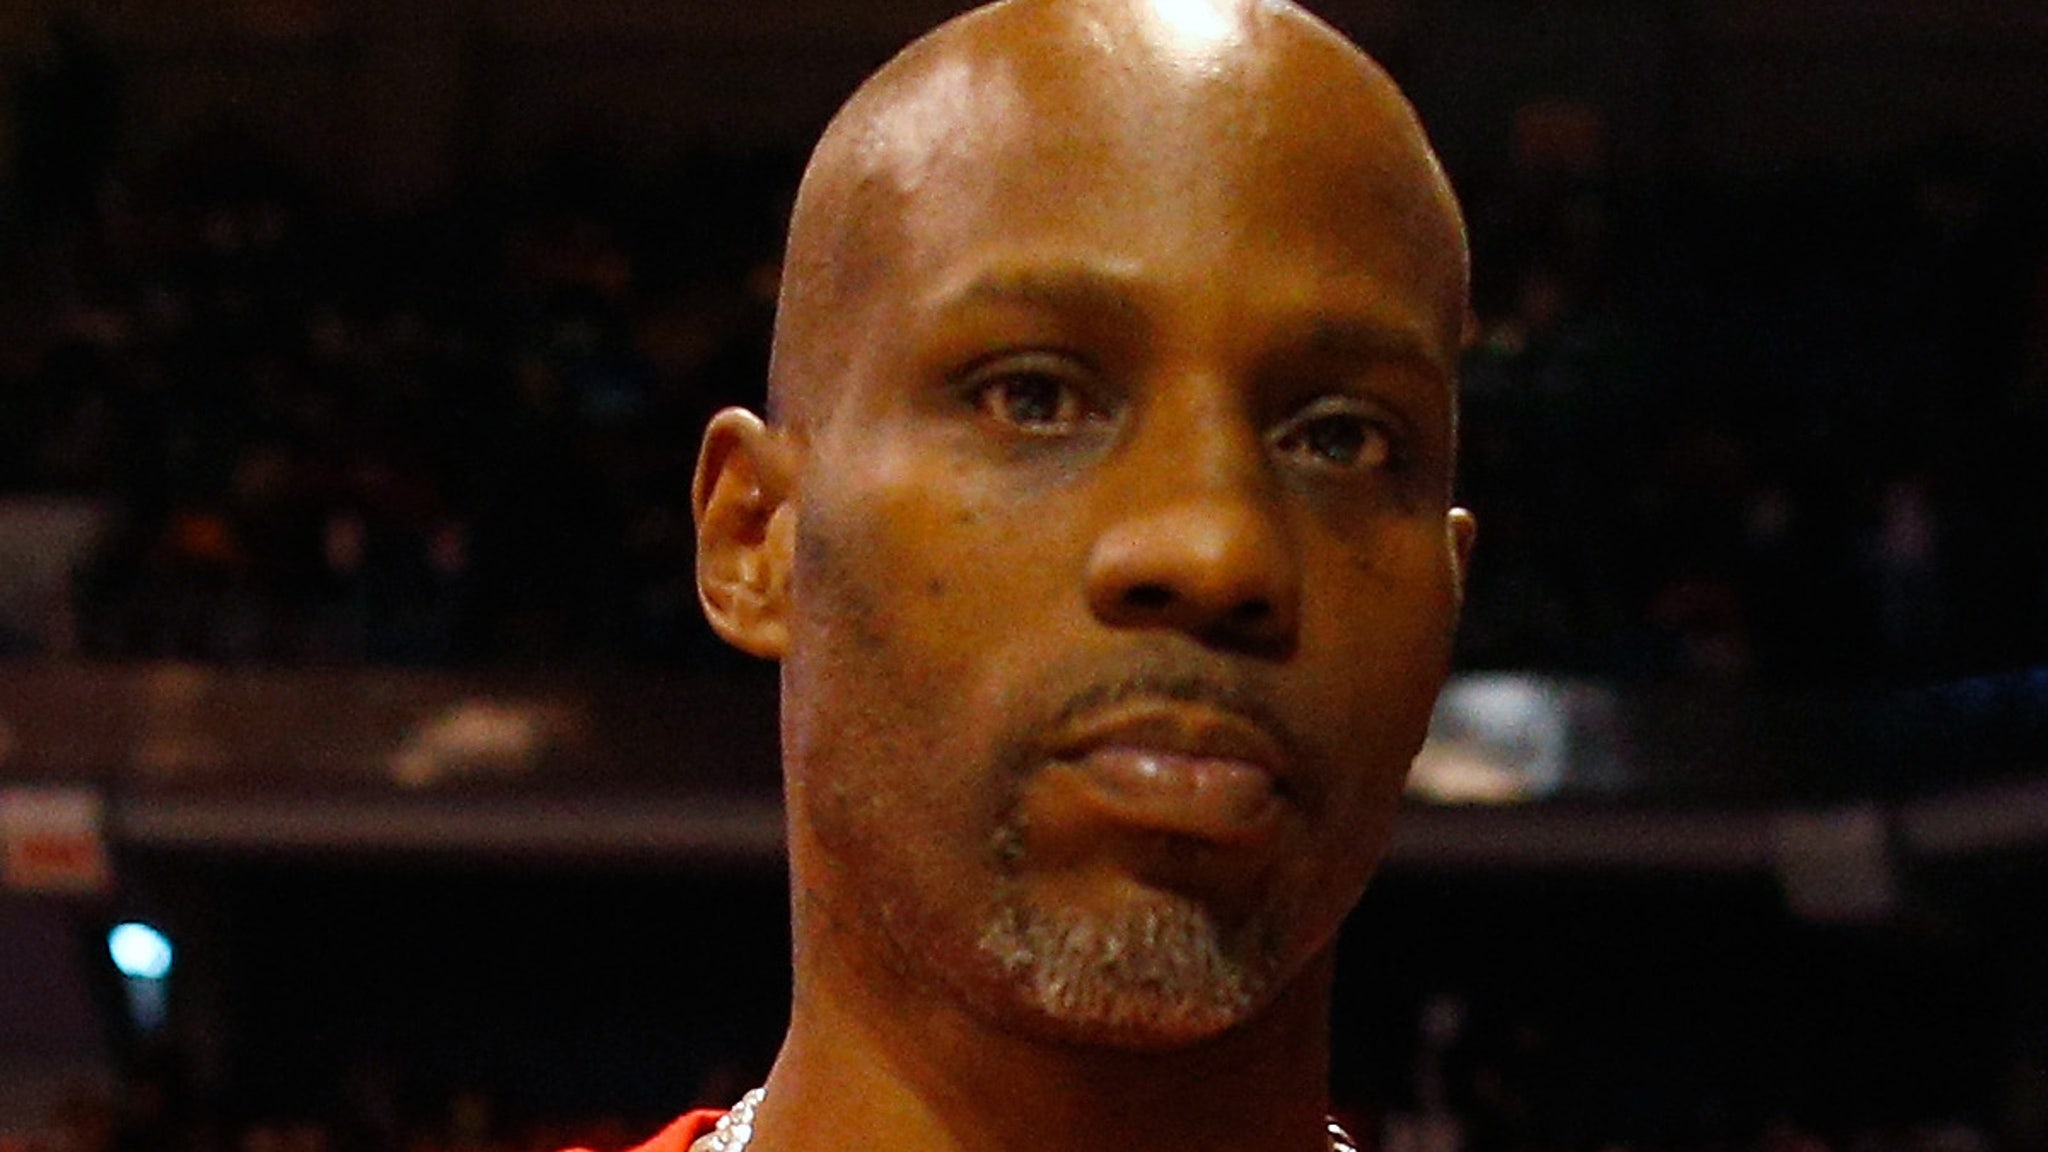 DMX Family and Friends Gather for Church Funeral Service